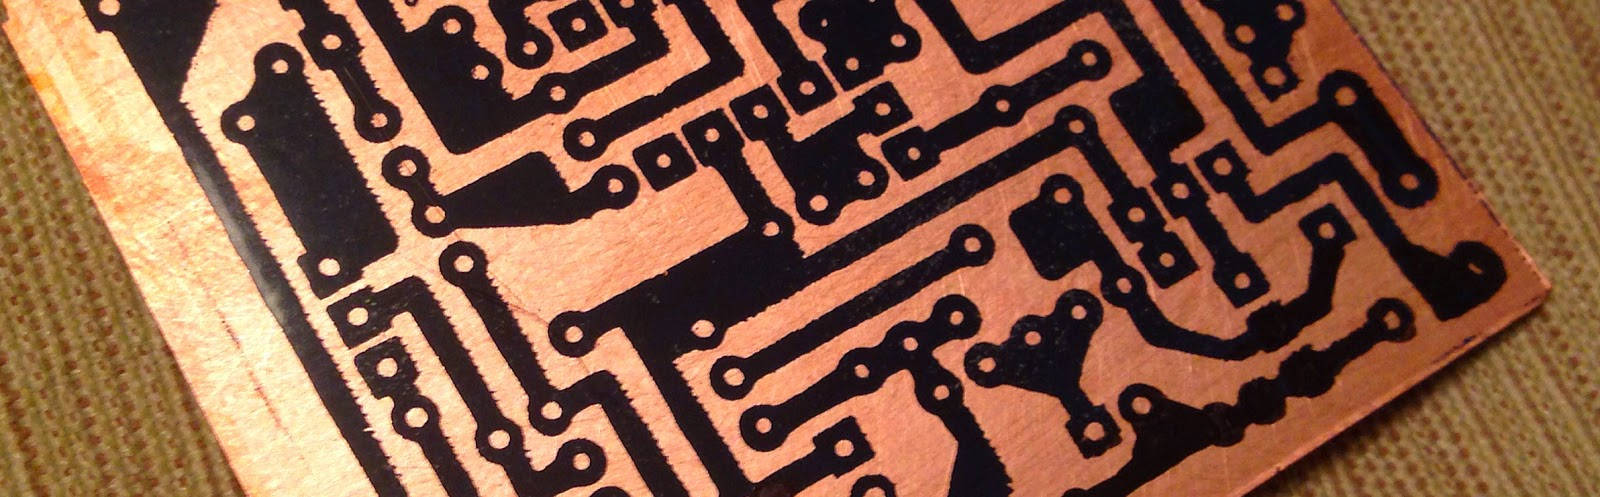 Perf And Pcb Effects Layouts Etching Circuit Board After Process There Are A Lot Of Methods To Etch Your Own Boards With That Comes Different Tutorials Im Not Going Try Reinvent The Wheel